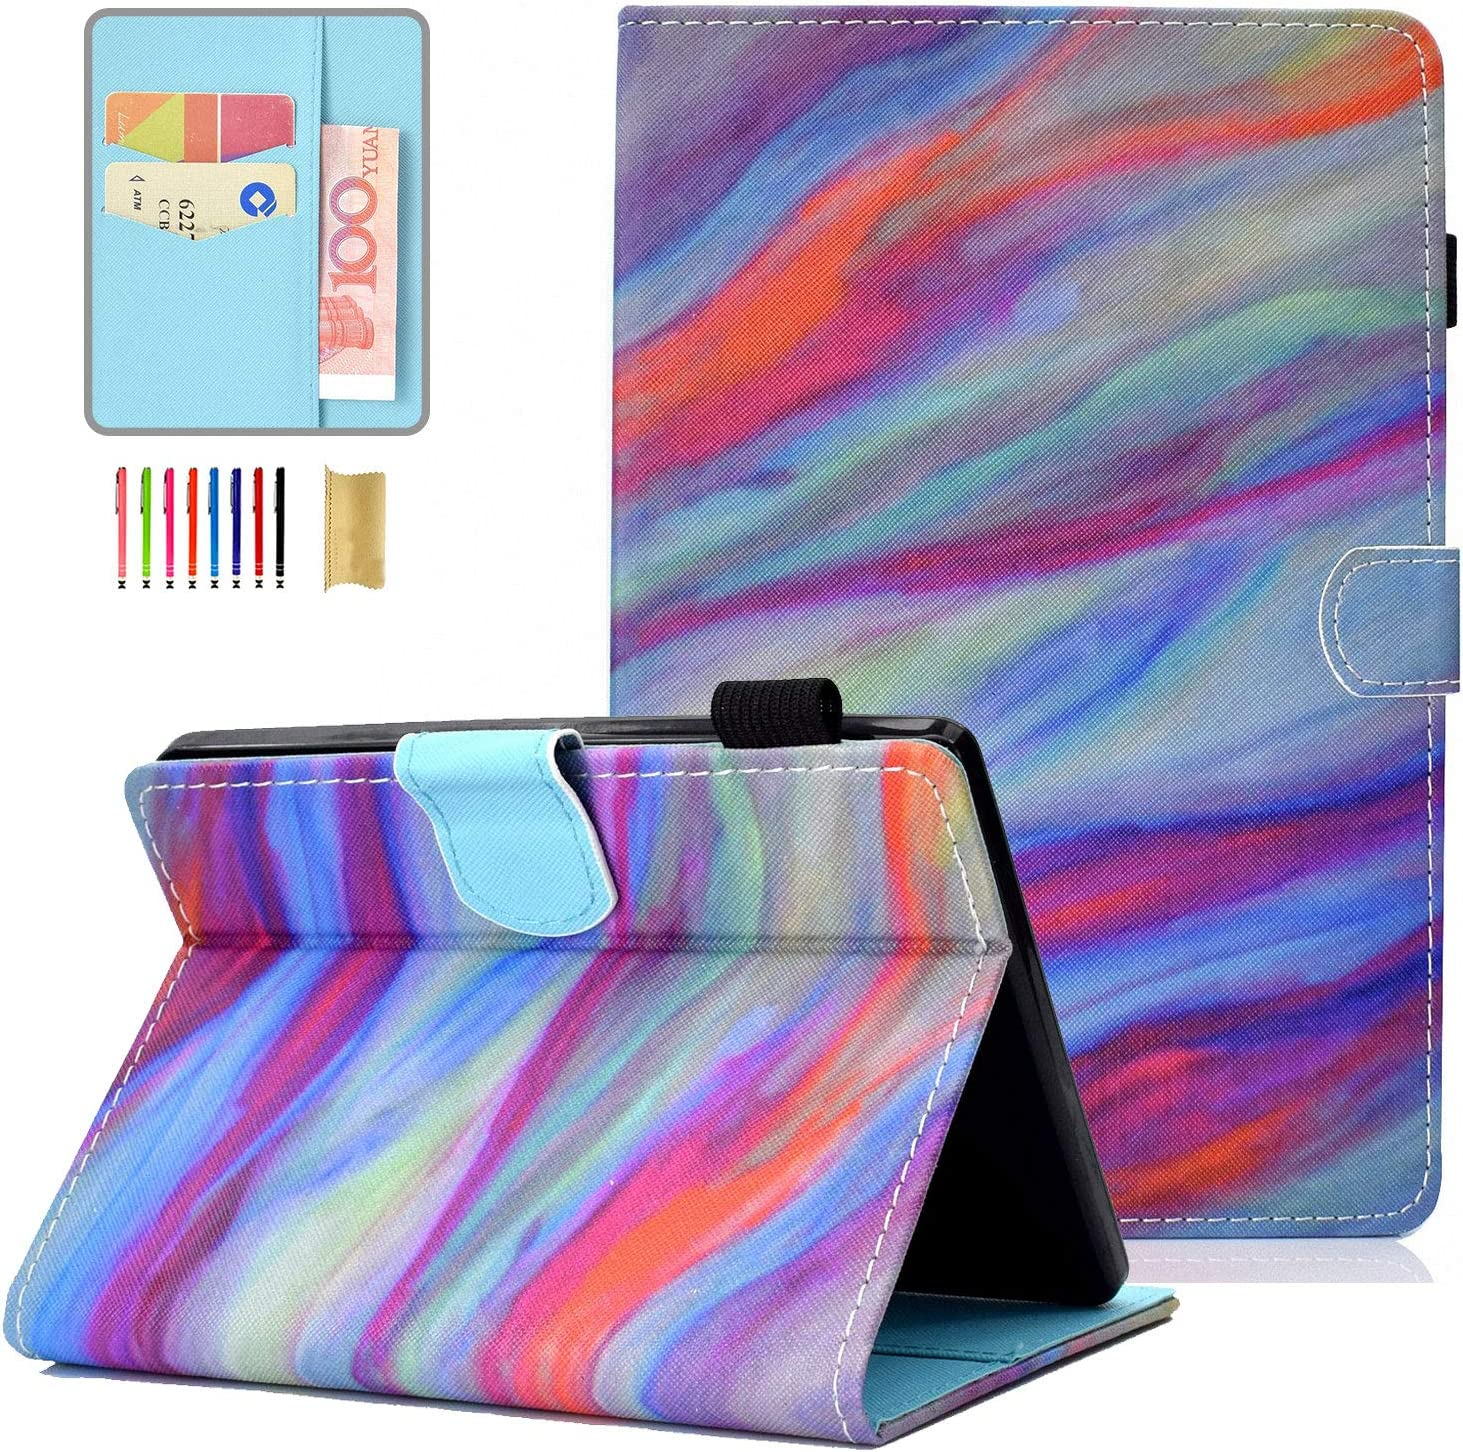 APOLL Case Free Shipping Cheap Bargain Gift for Kindle Paperwhite Max 64% OFF Release 10th Generation 2018